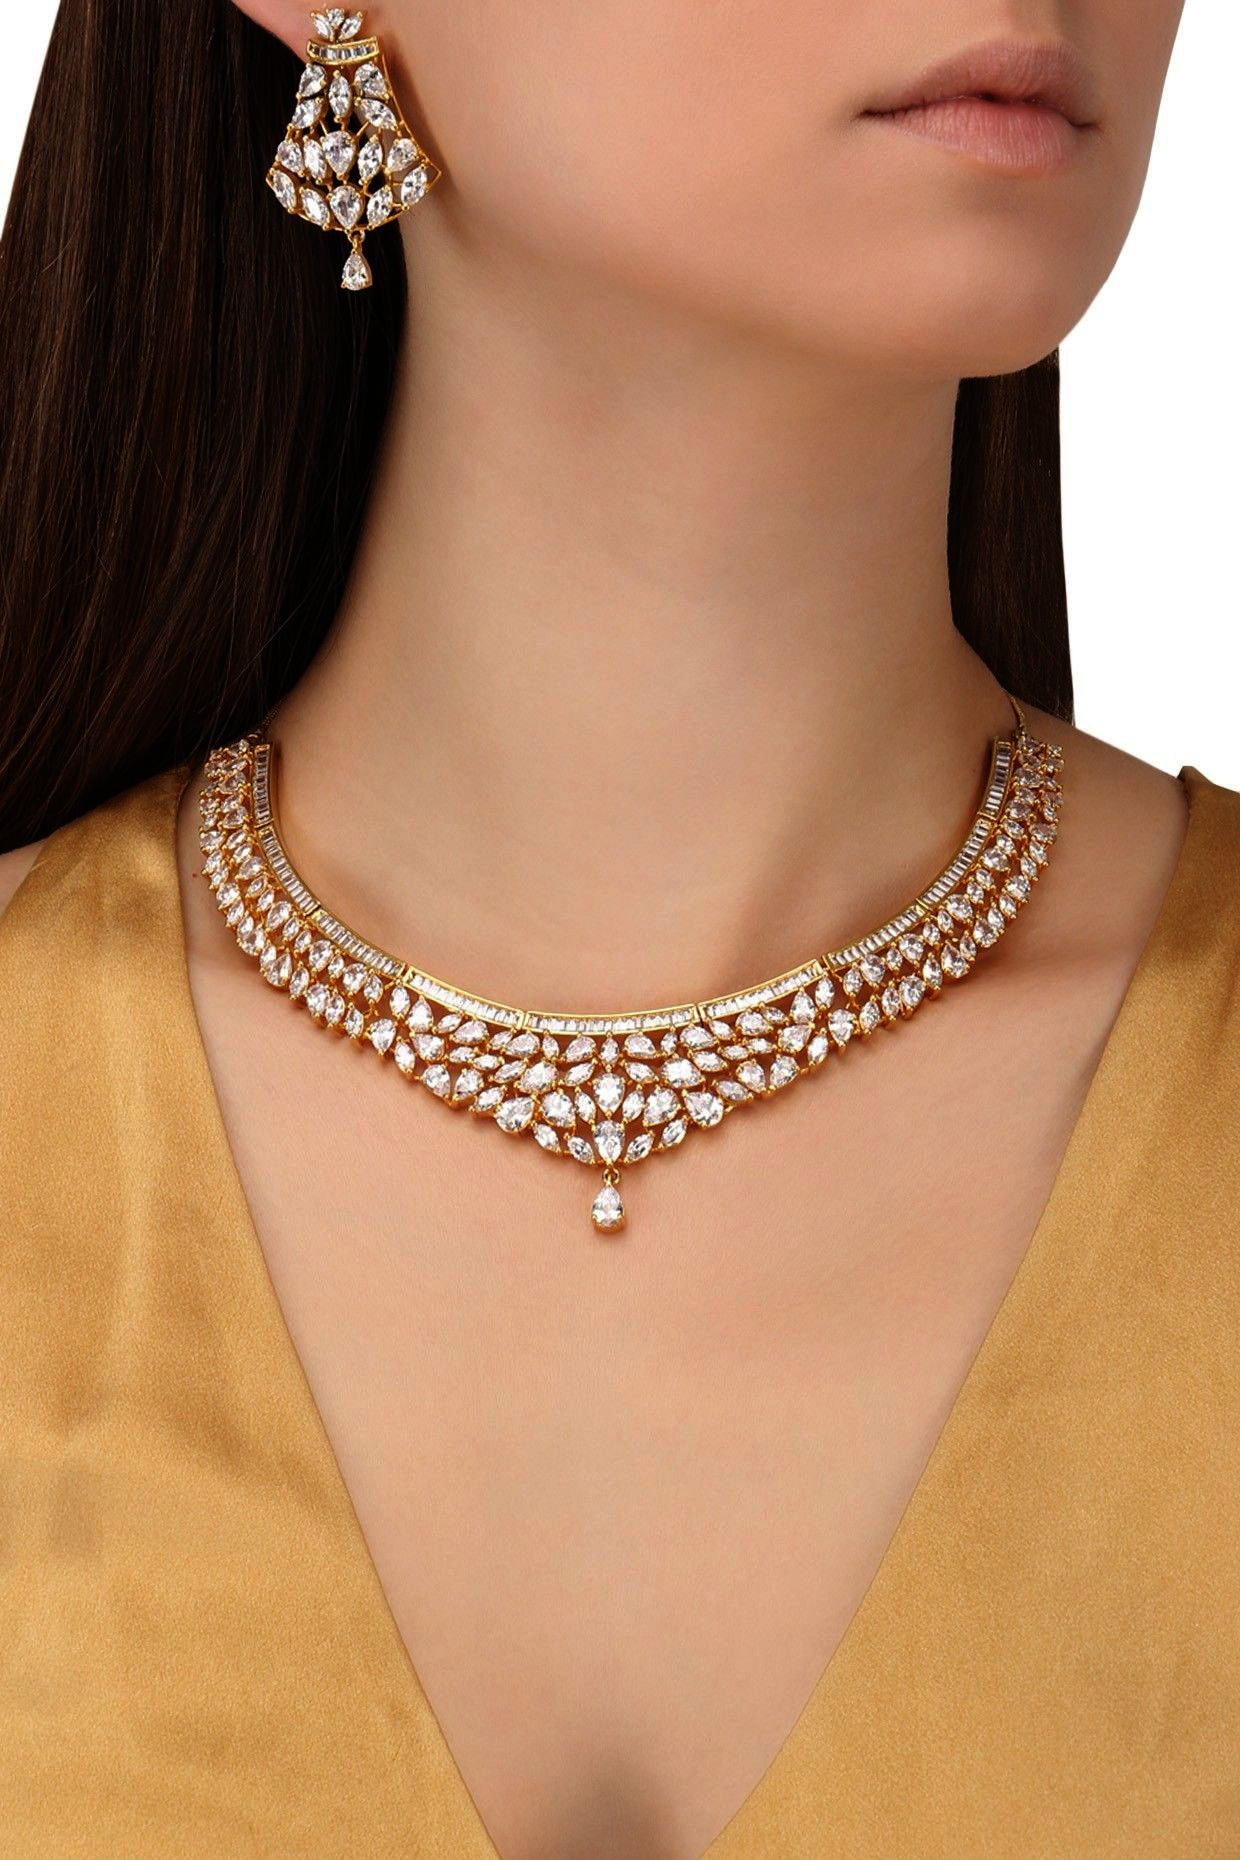 28++ Rent to own jewelry online ideas in 2021